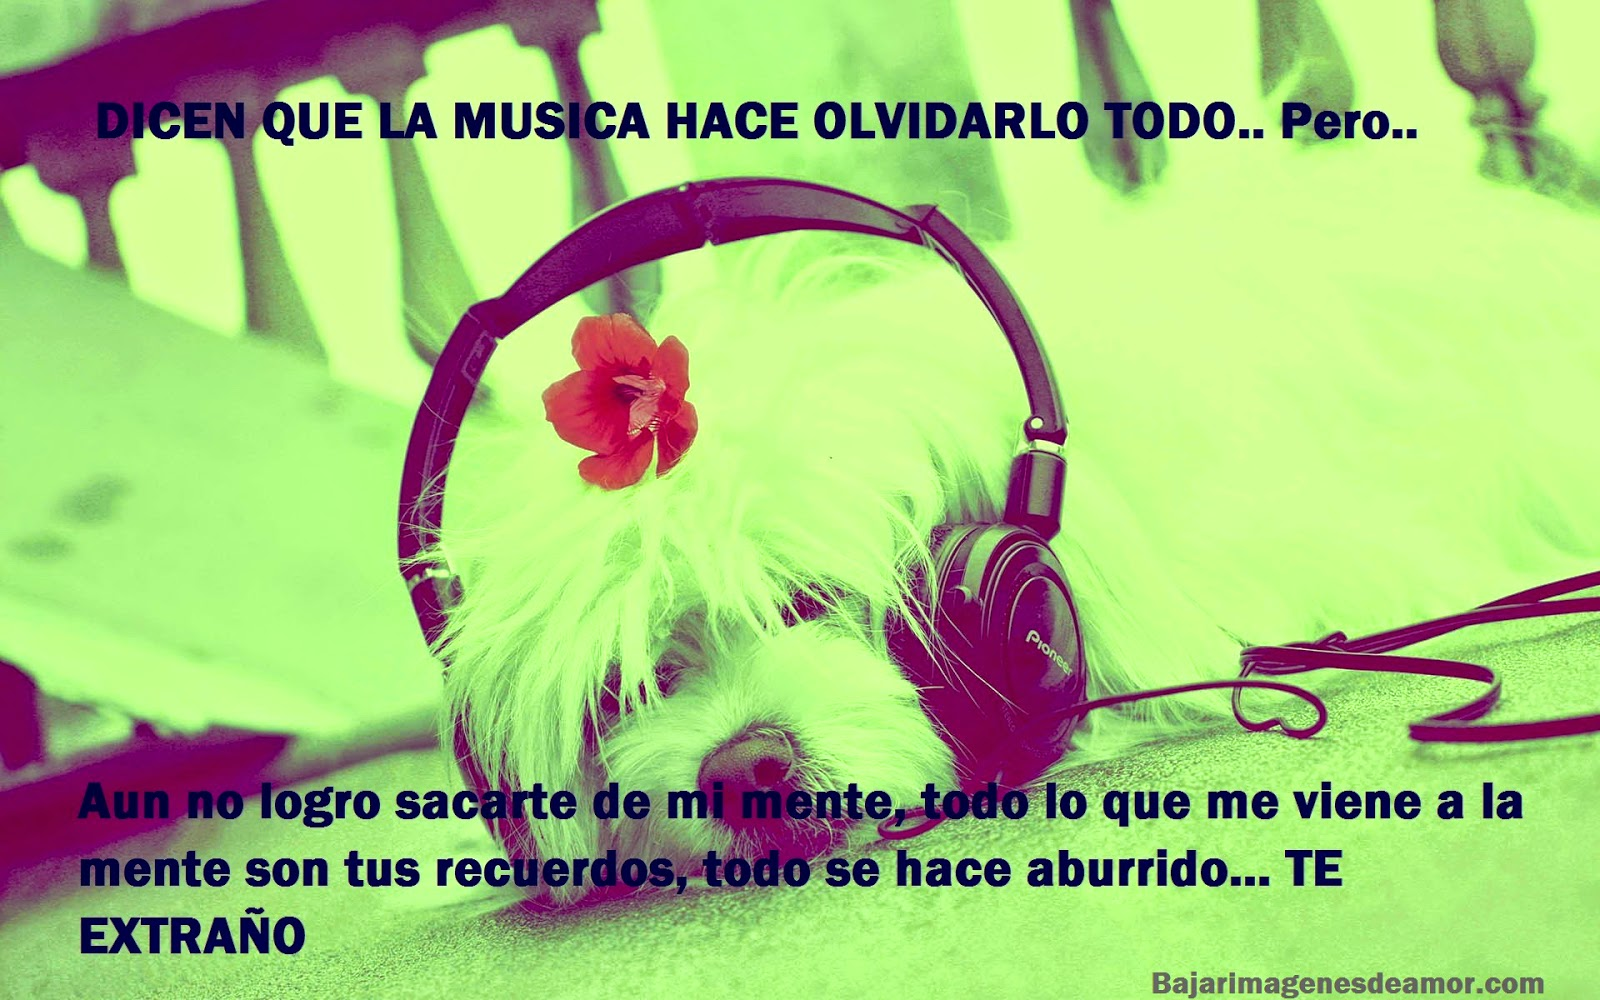 Best Imagenes De Amor Con Frases Y Movimiento Y Musica Image Collection